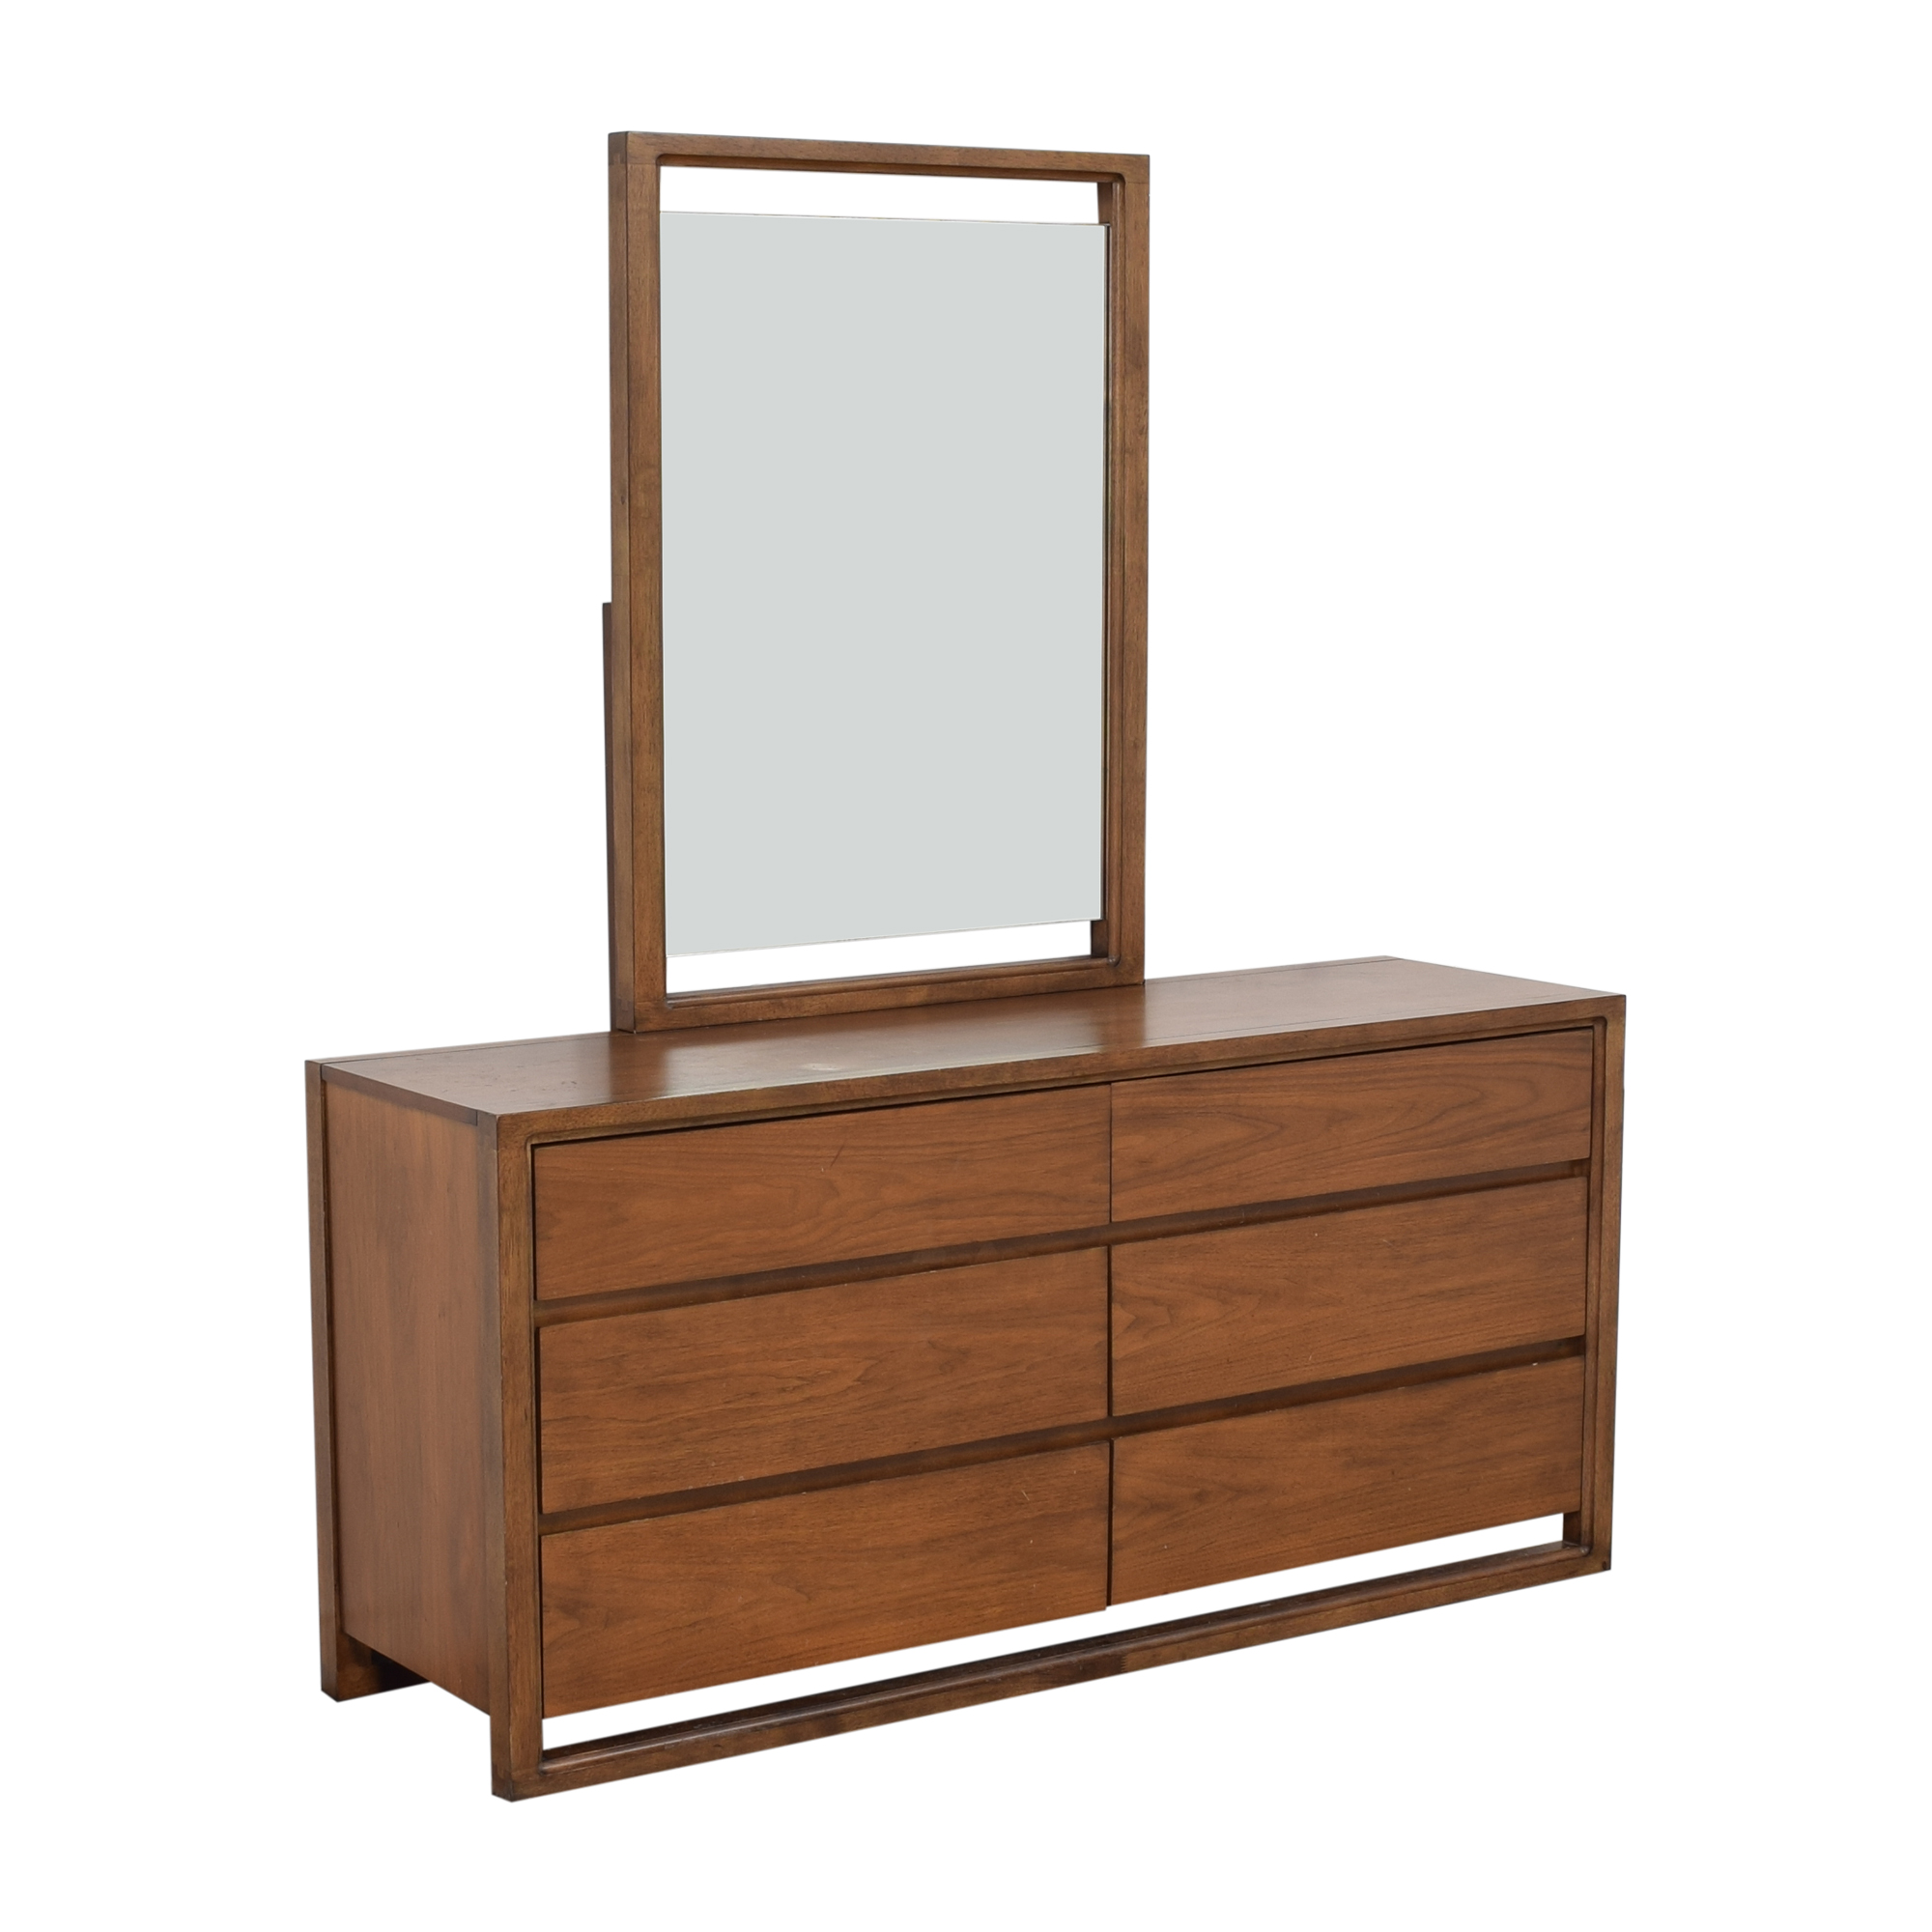 Raymour & Flanigan Raymour & Flanigan Aversa Six-Drawer Dresser with Mirror second hand